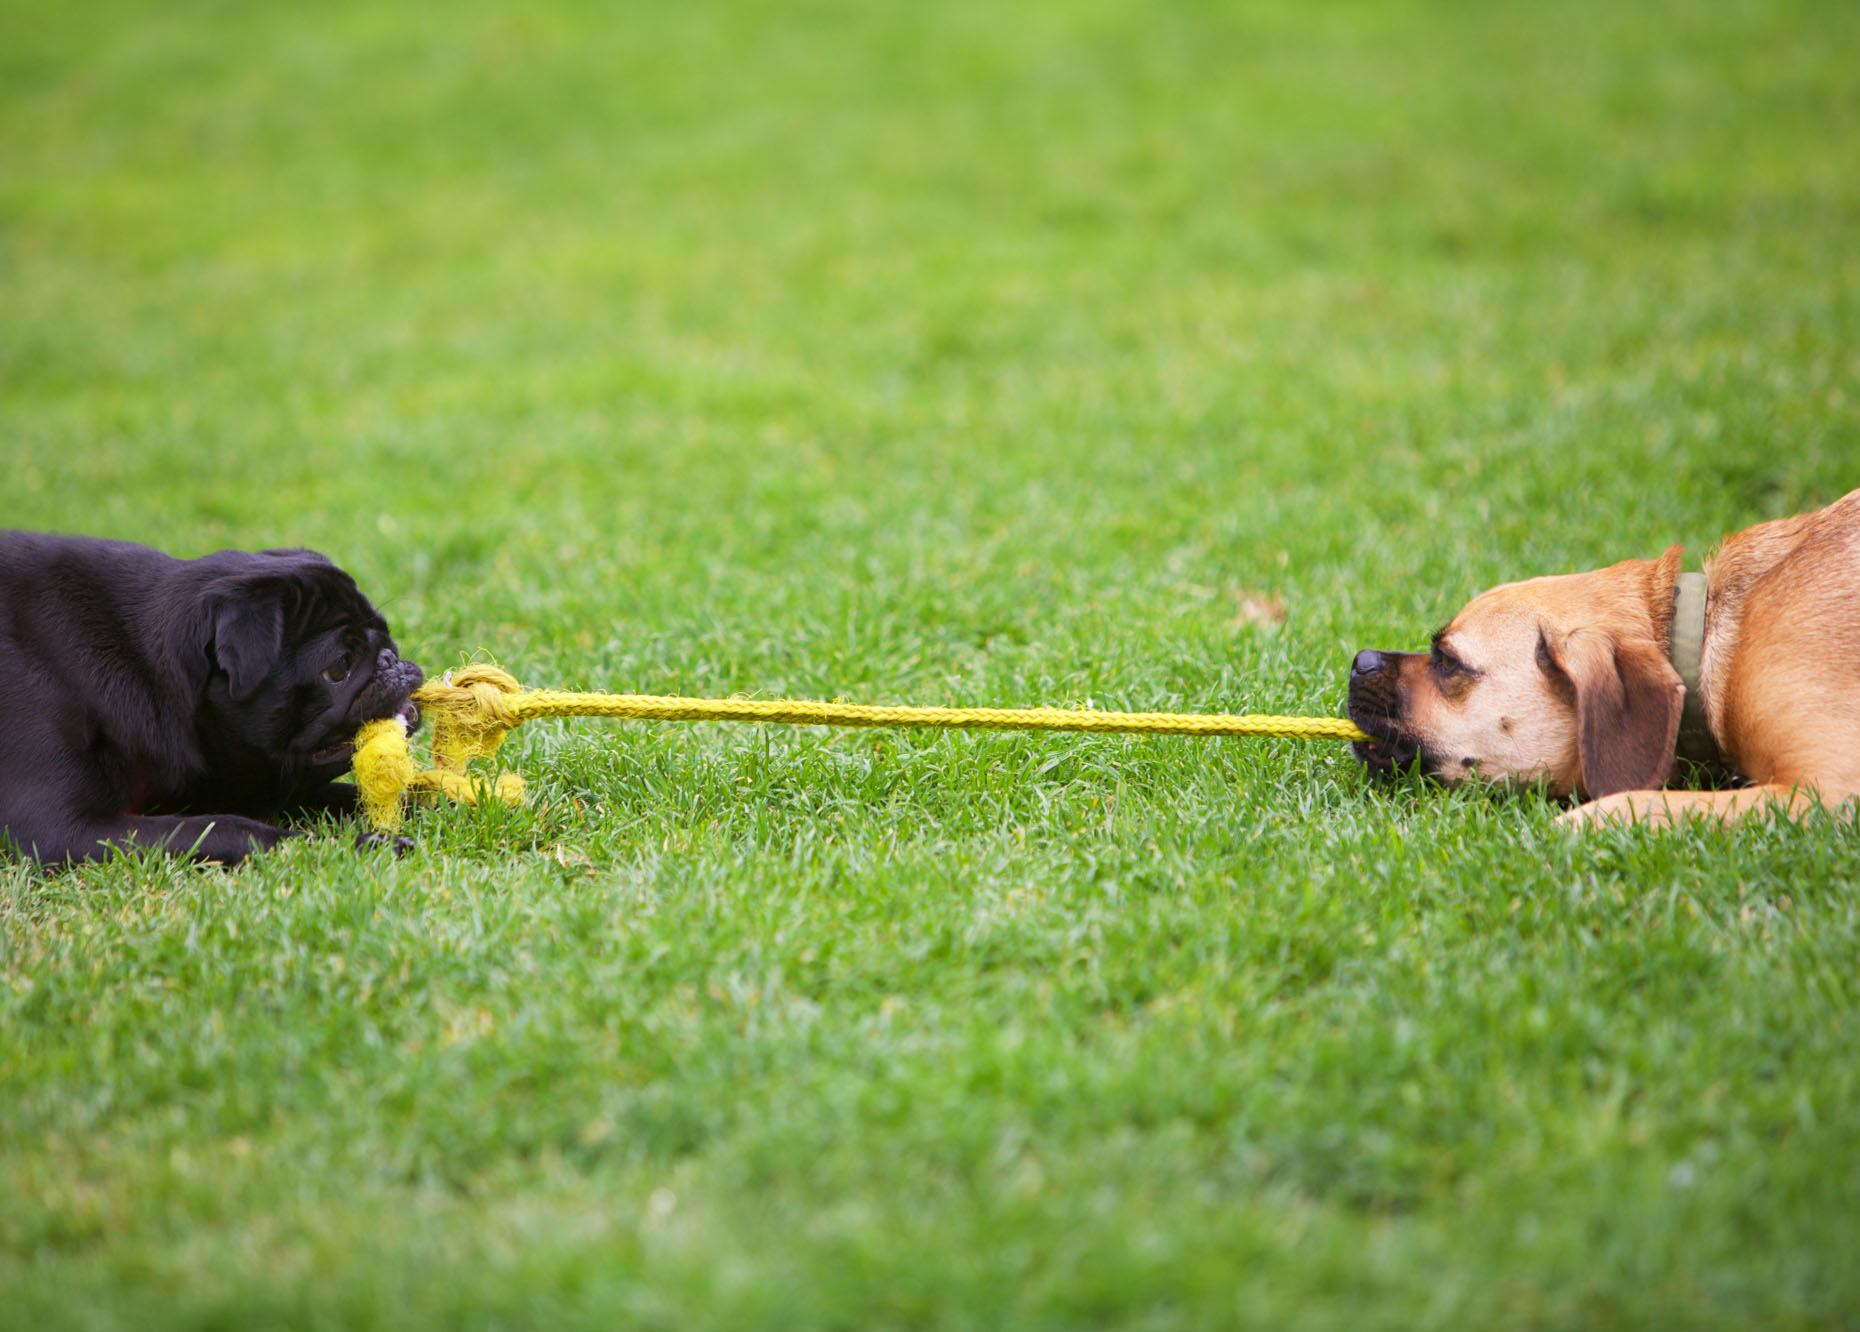 Dog Photography | Dogs Playing Tug of War by Mark Rogers